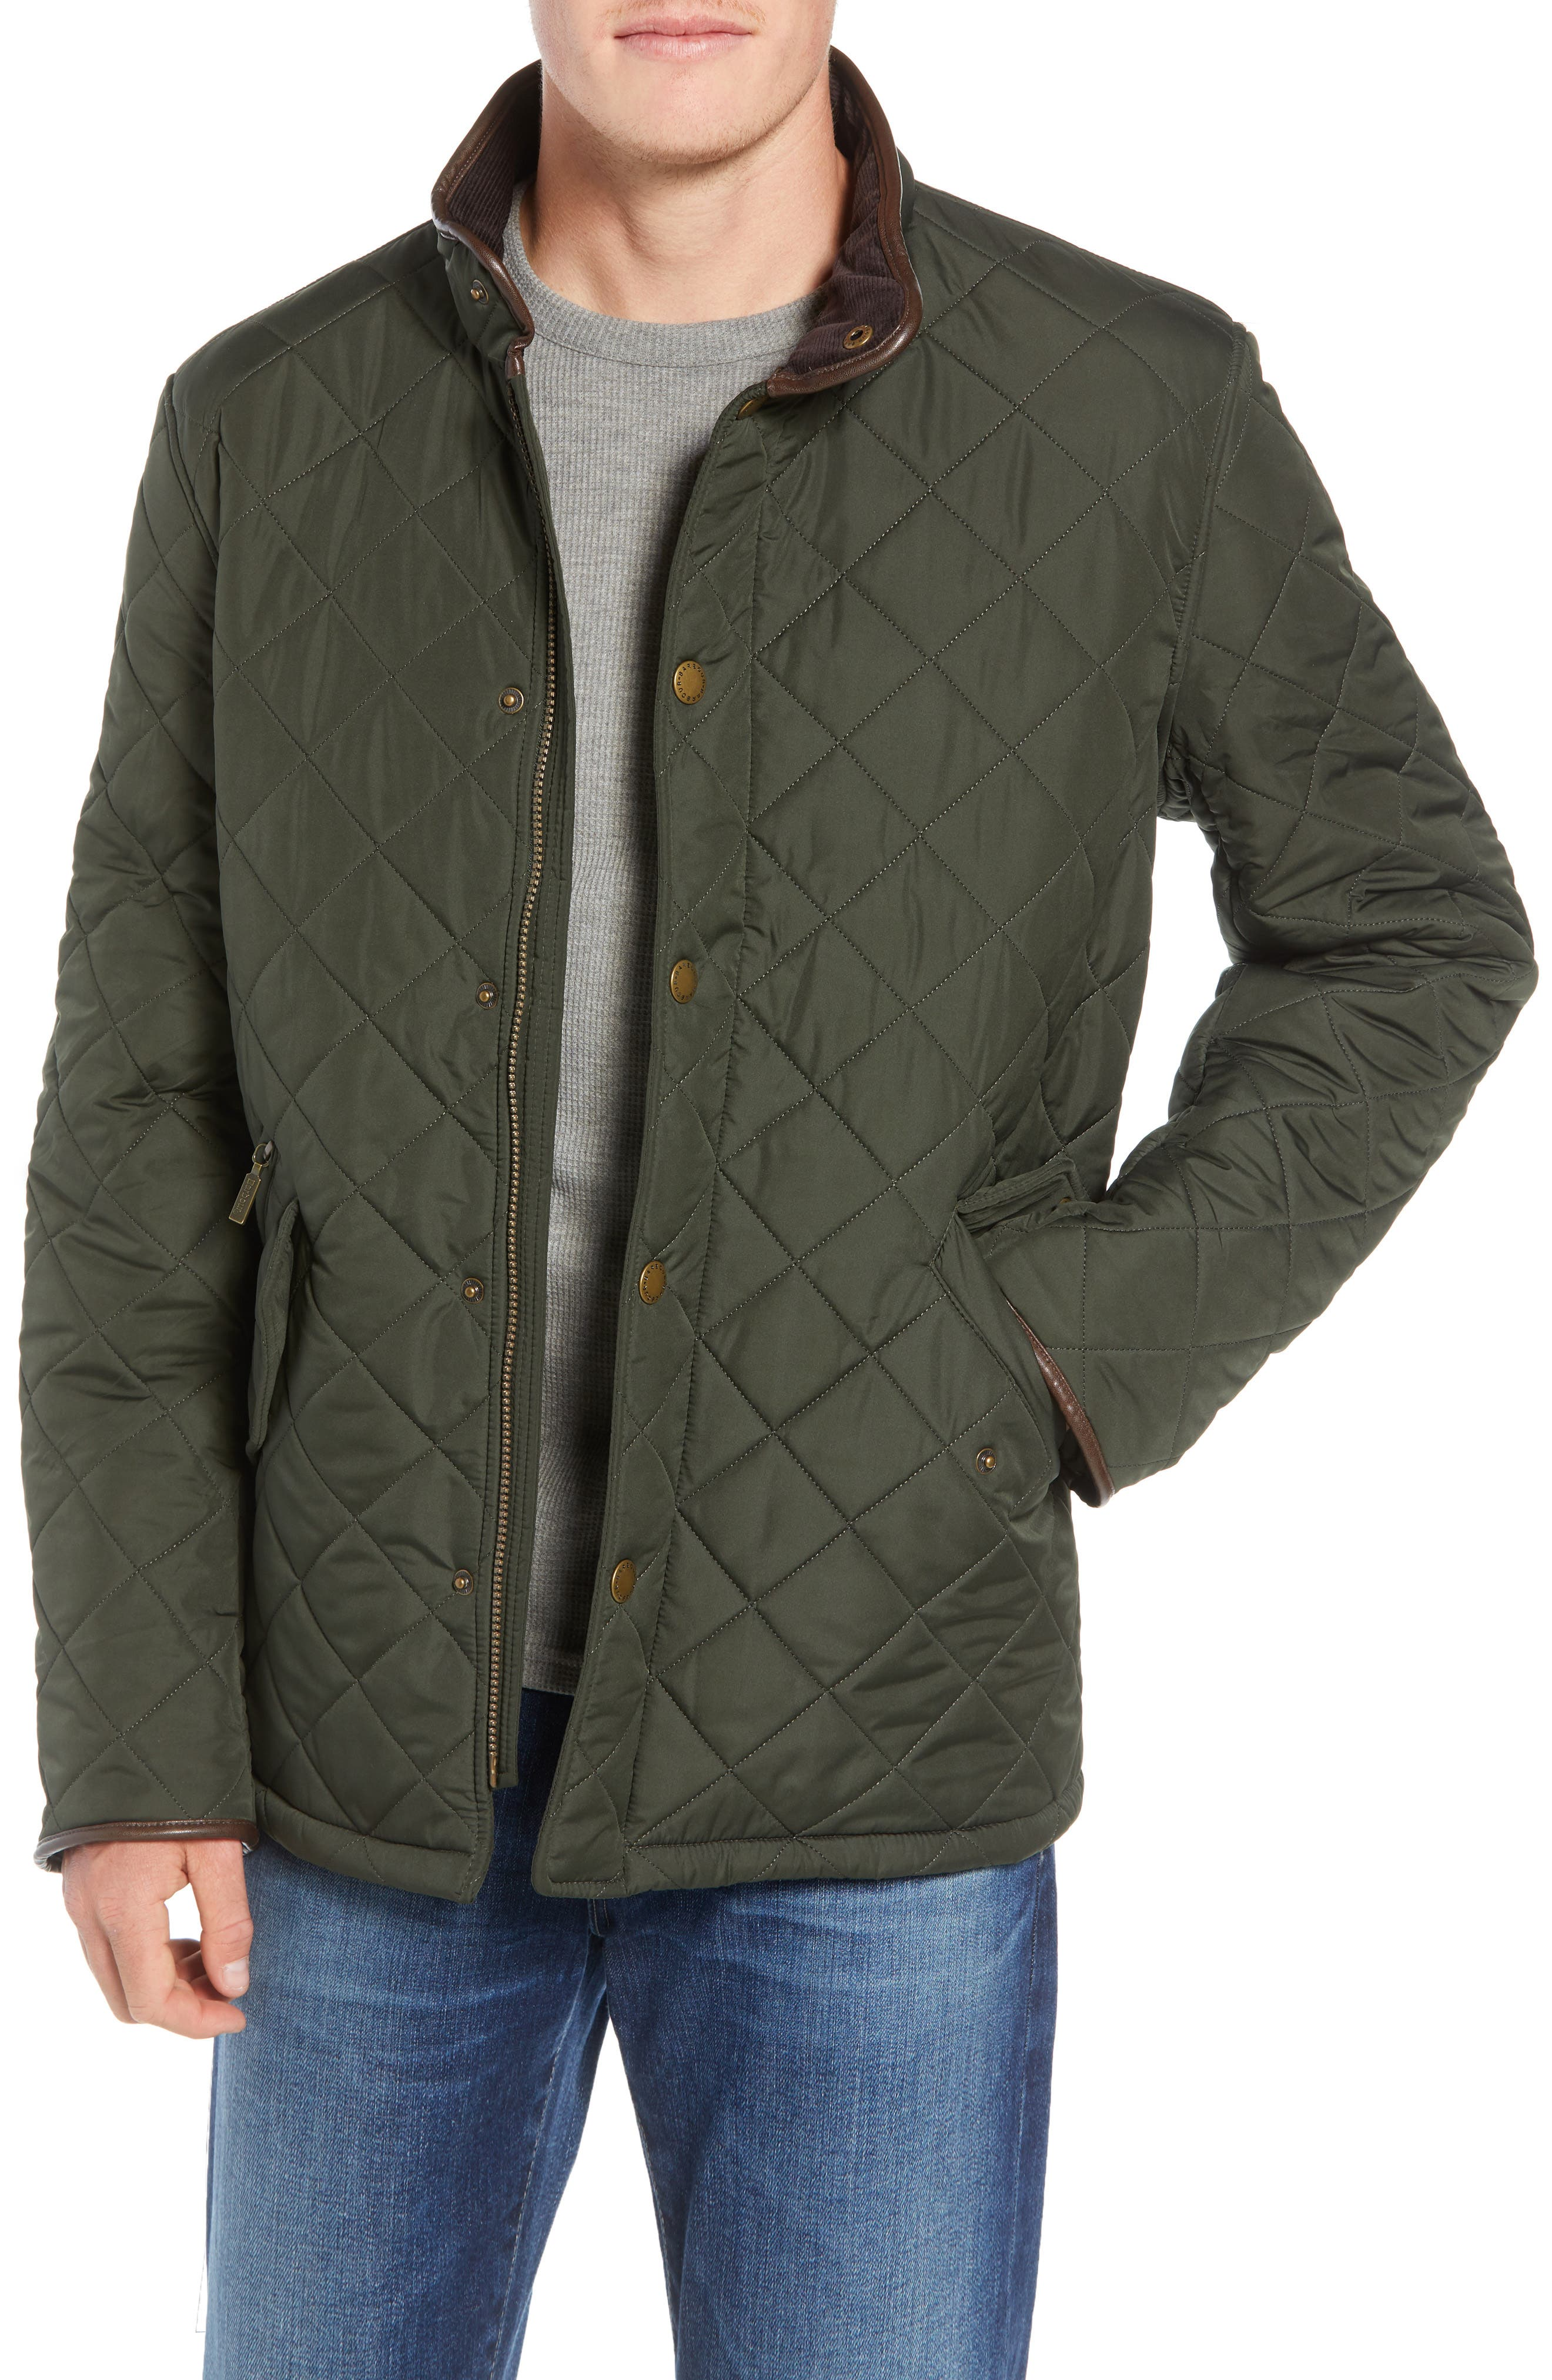 'Powell' Regular Fit Quilted Jacket,                         Main,                         color, SAGE/ OLIVE